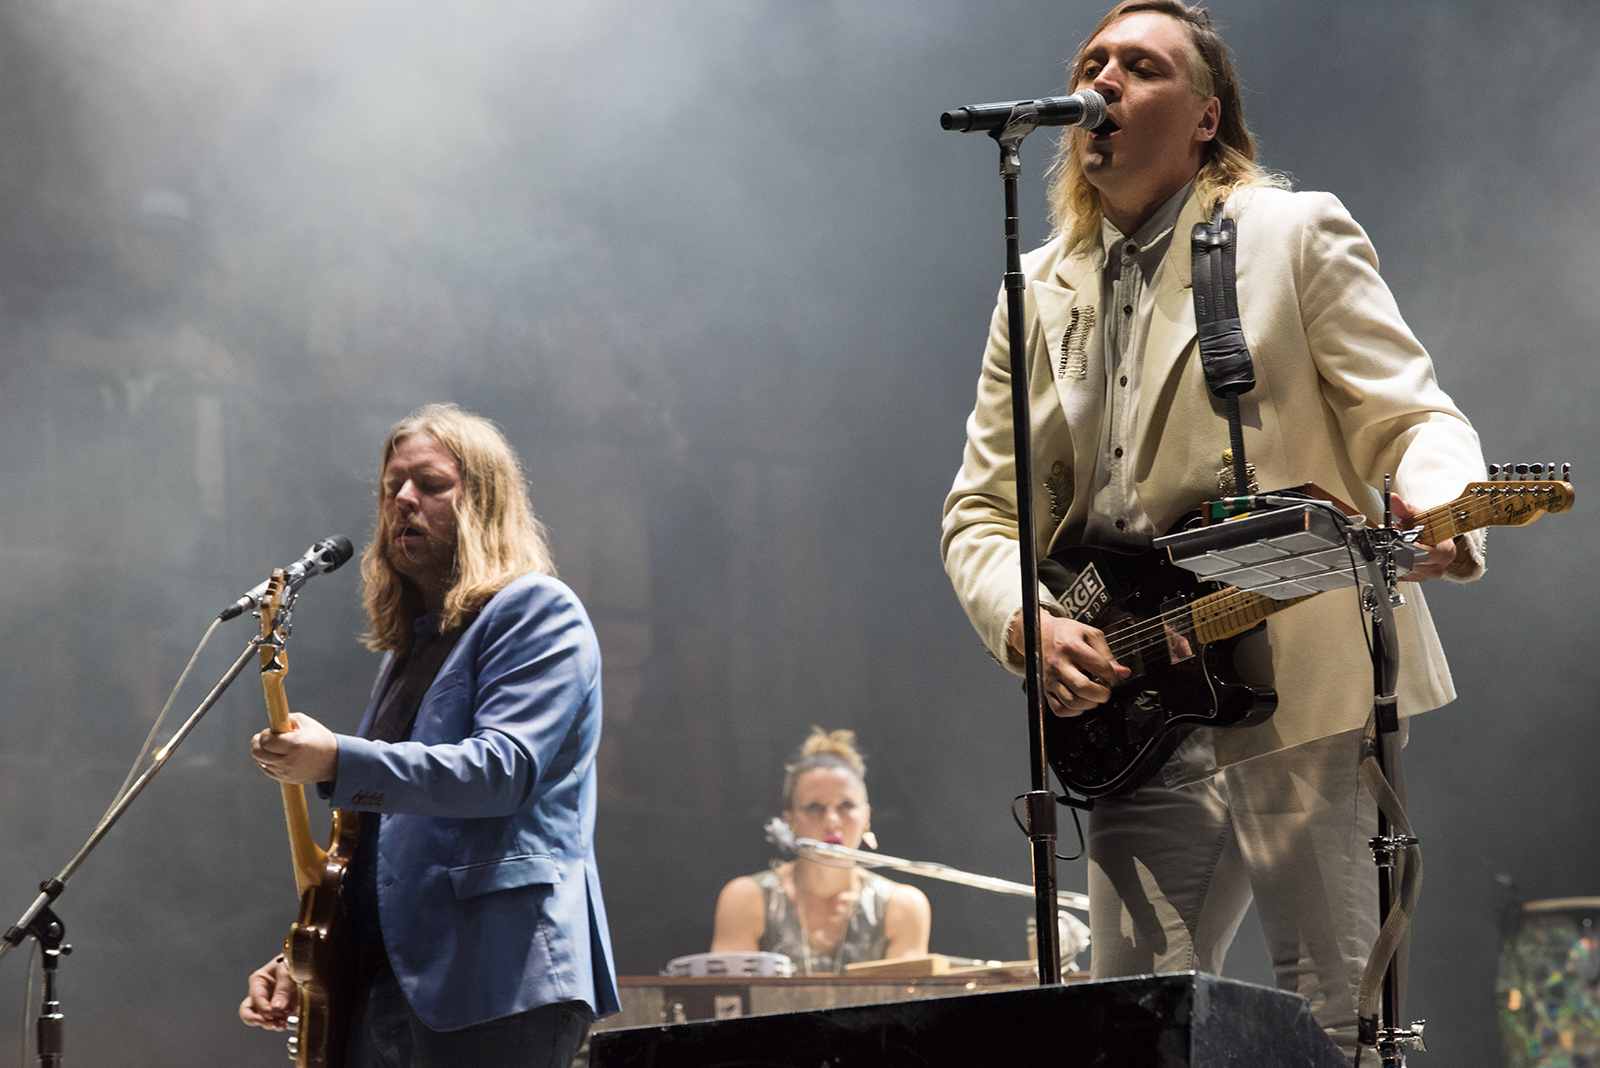 Arcade Fire at Voodoo Fest 2016